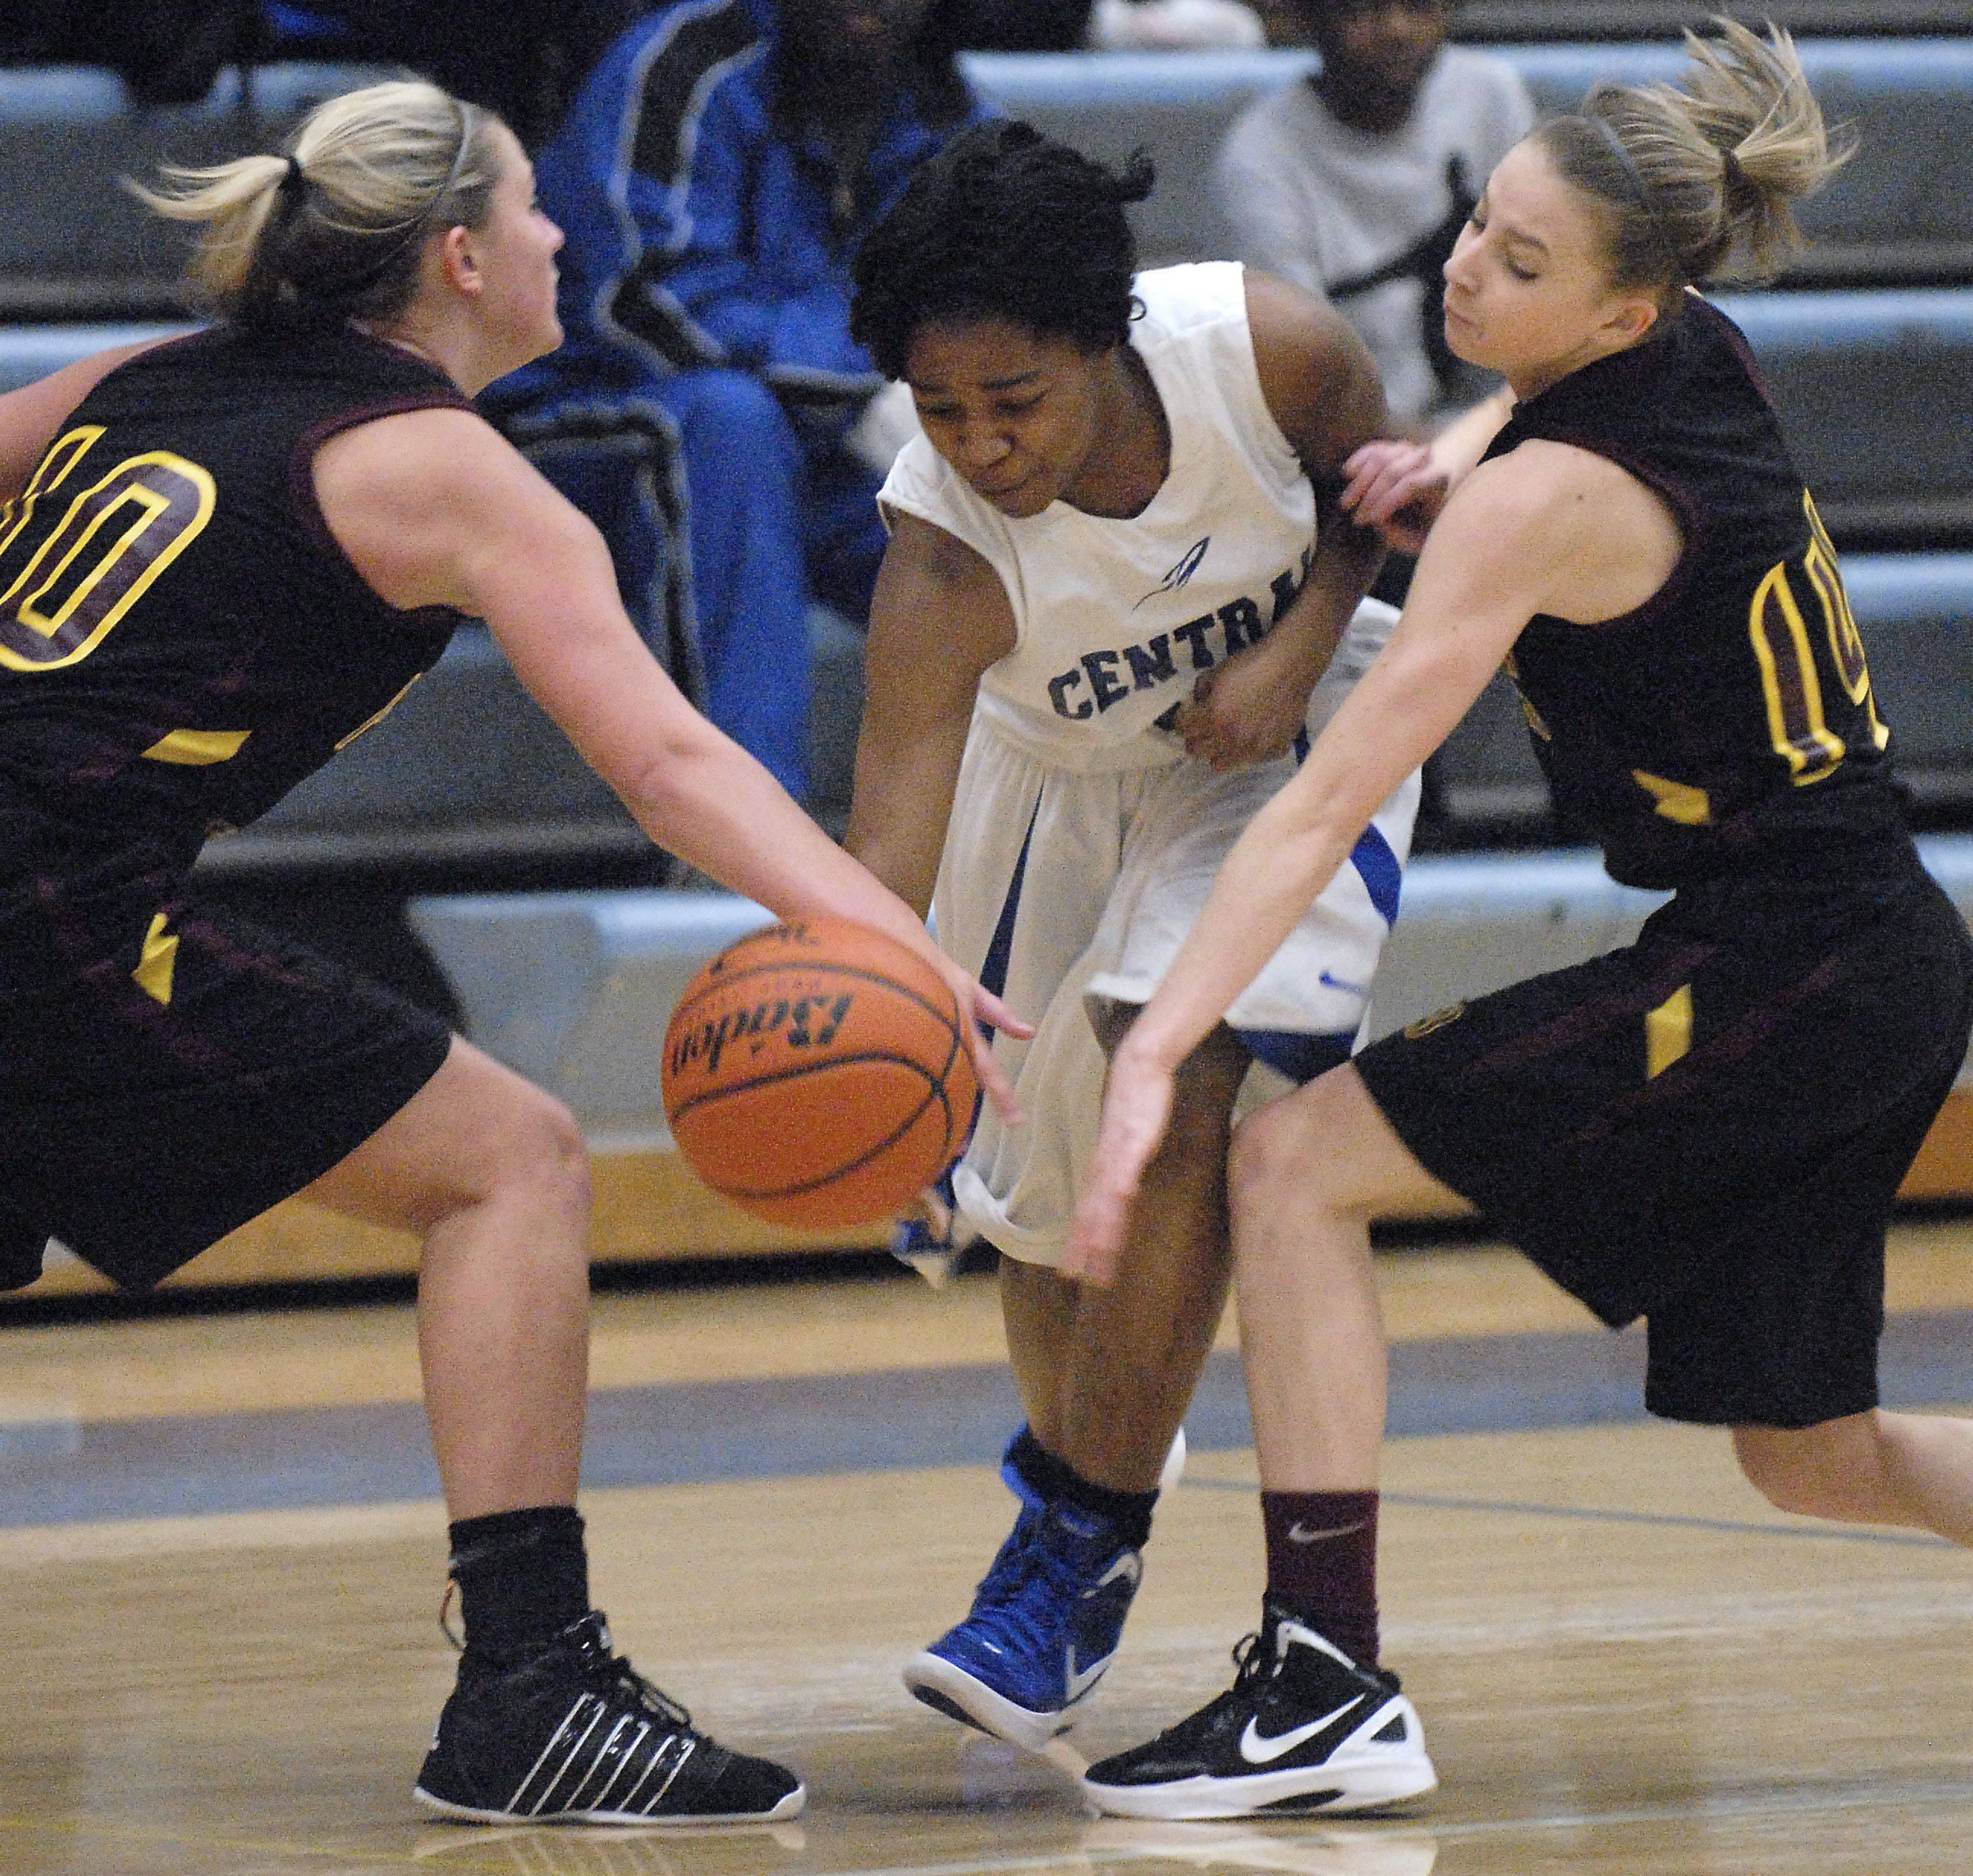 Burlington Central's Erica Haynes busts through a block by Richmond-Burton's Alex Callanan, left, and Erin Thomas in the first quarter on Saturday.